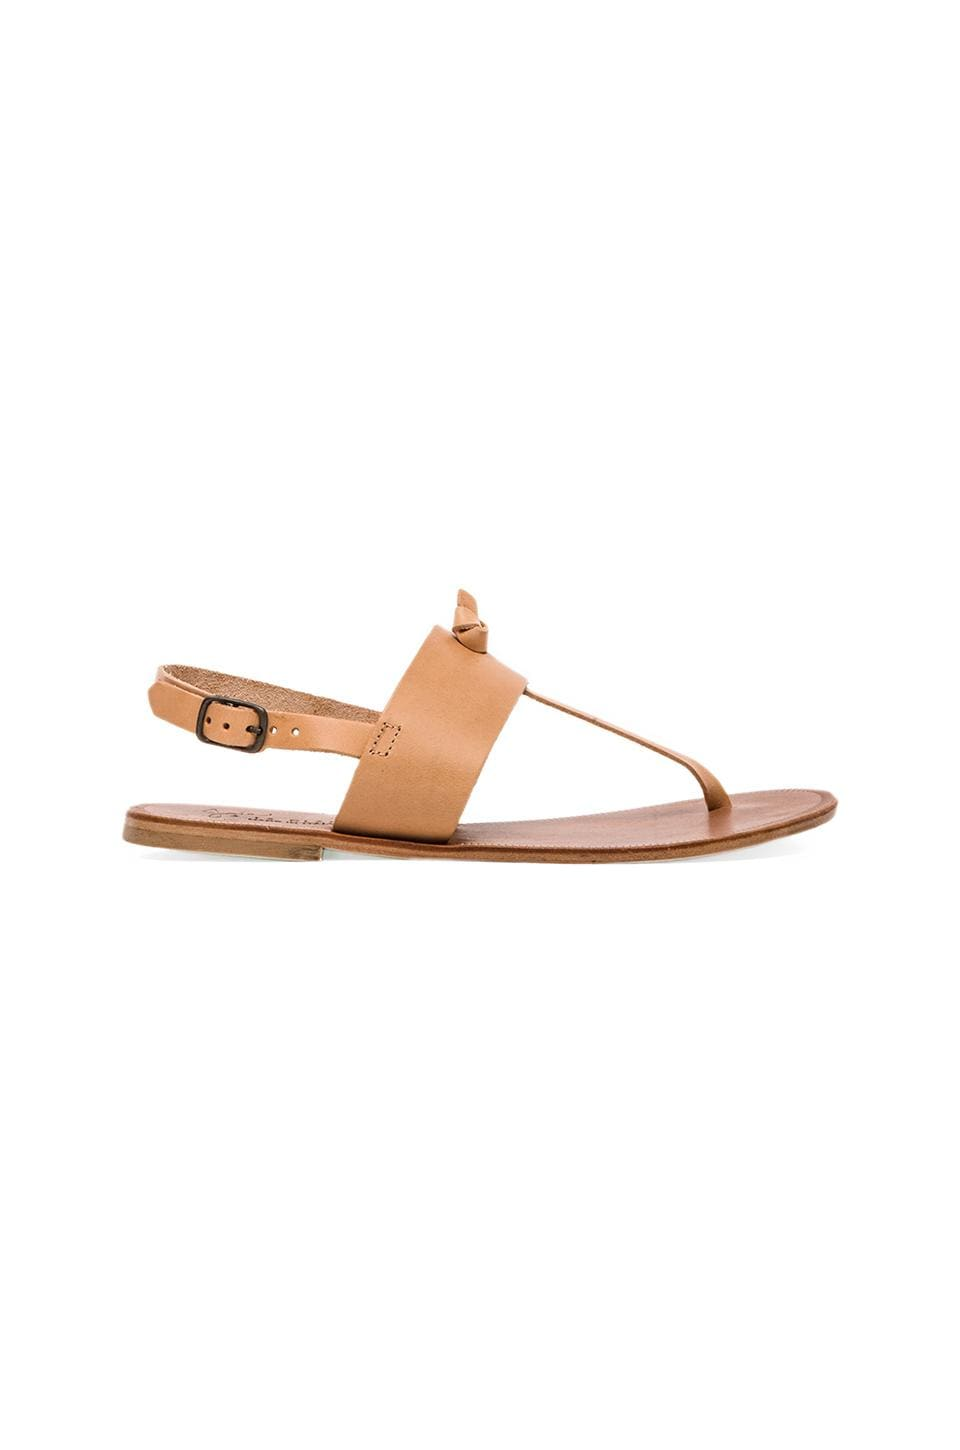 Joie Bastia Sandal in Natural